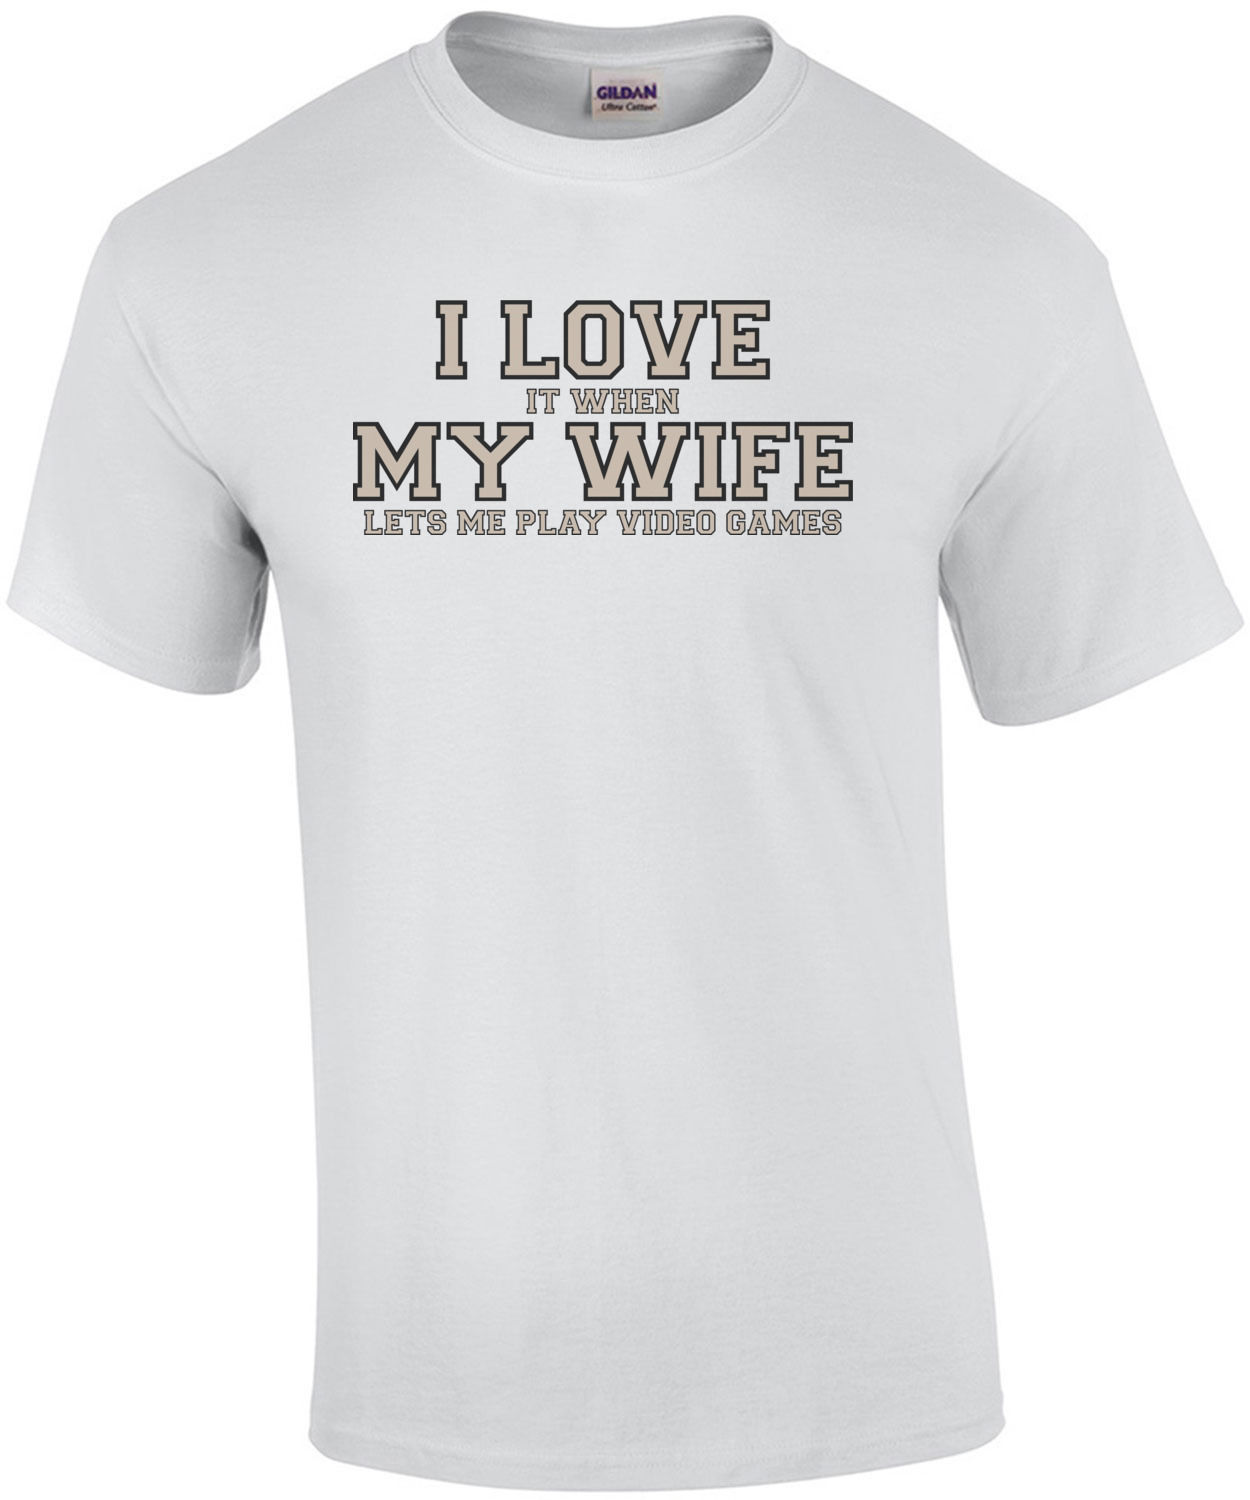 I Love It When My Wife Lets Me Play Video Games - Funny T-Shirt Short Sleeve Casual Printed Tee Size S-3Xl T Shirt Top Tee